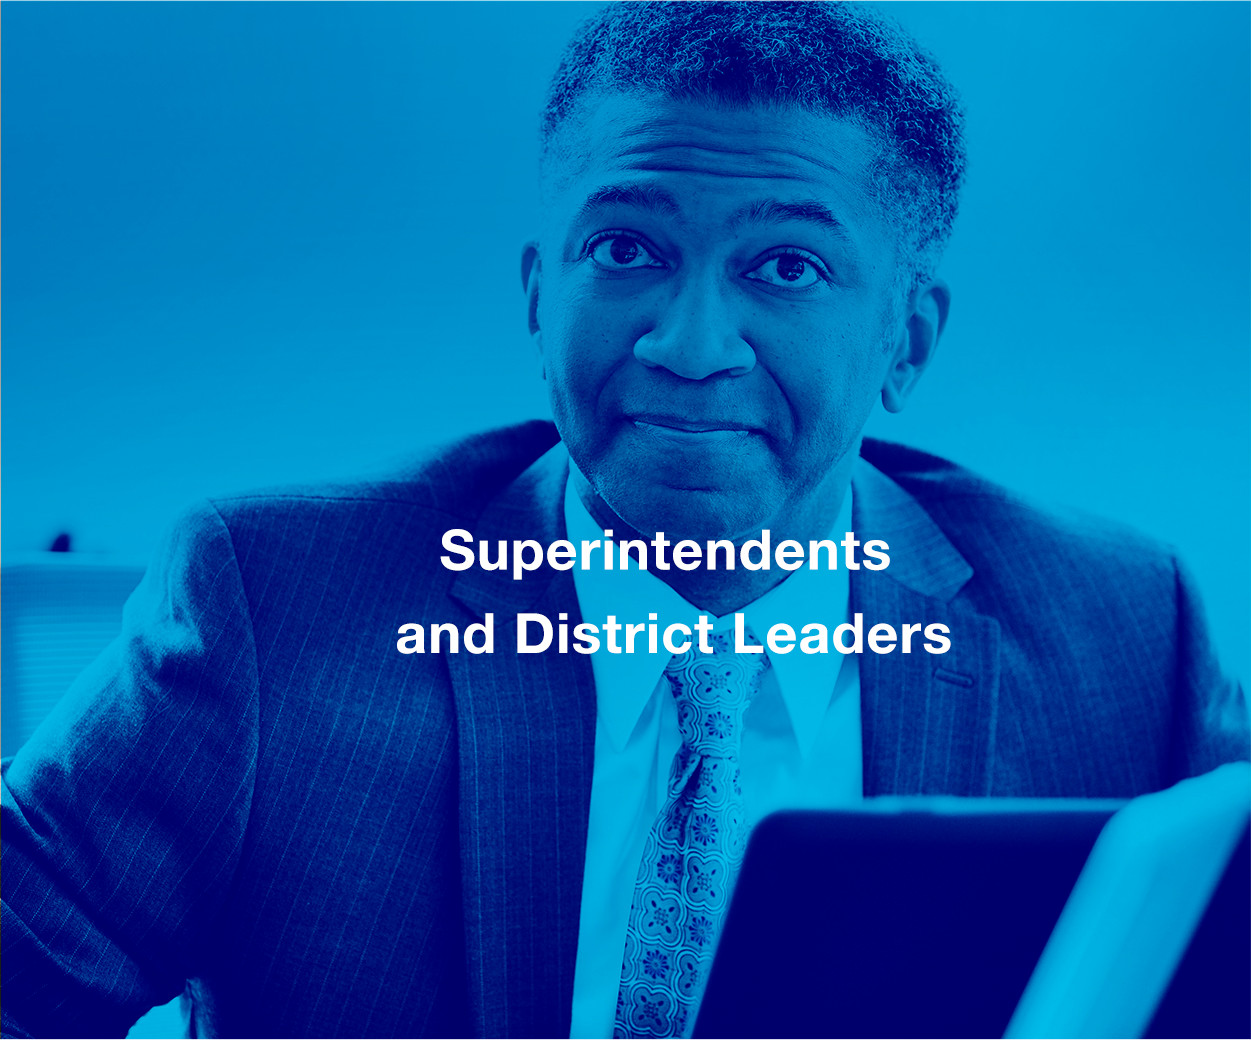 Superintendents and District Leaders